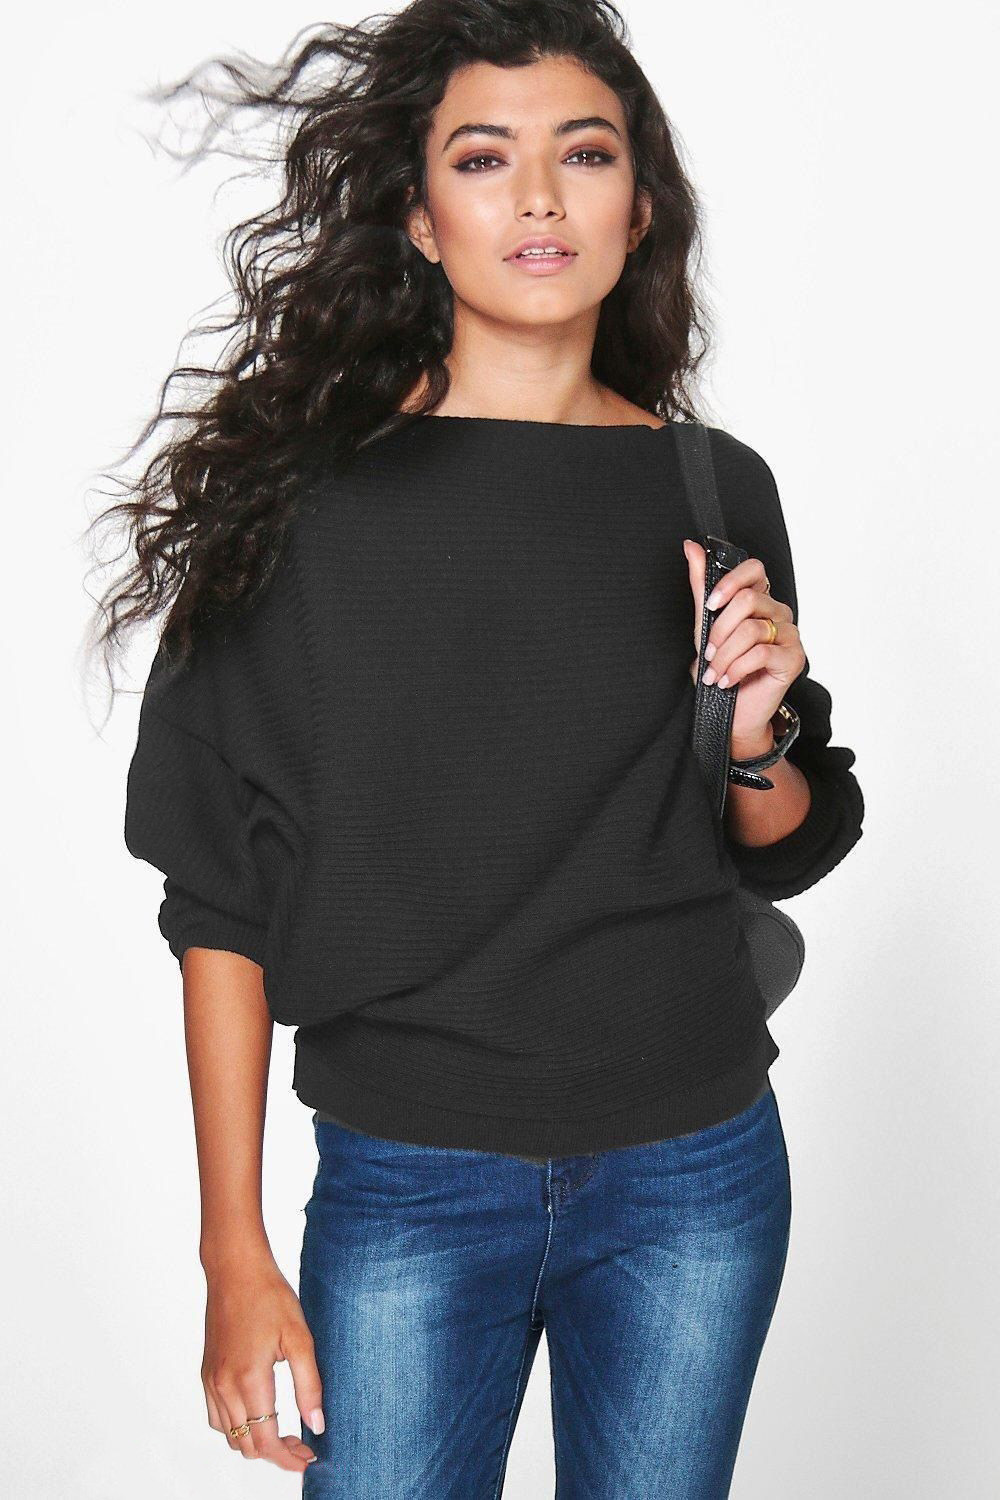 New Autumn Winter 2019 Casual Women Sweater Batwing Long Sleeve Knitted Sweater Solid Color Pullover Sweater Loose Cotton Tops#